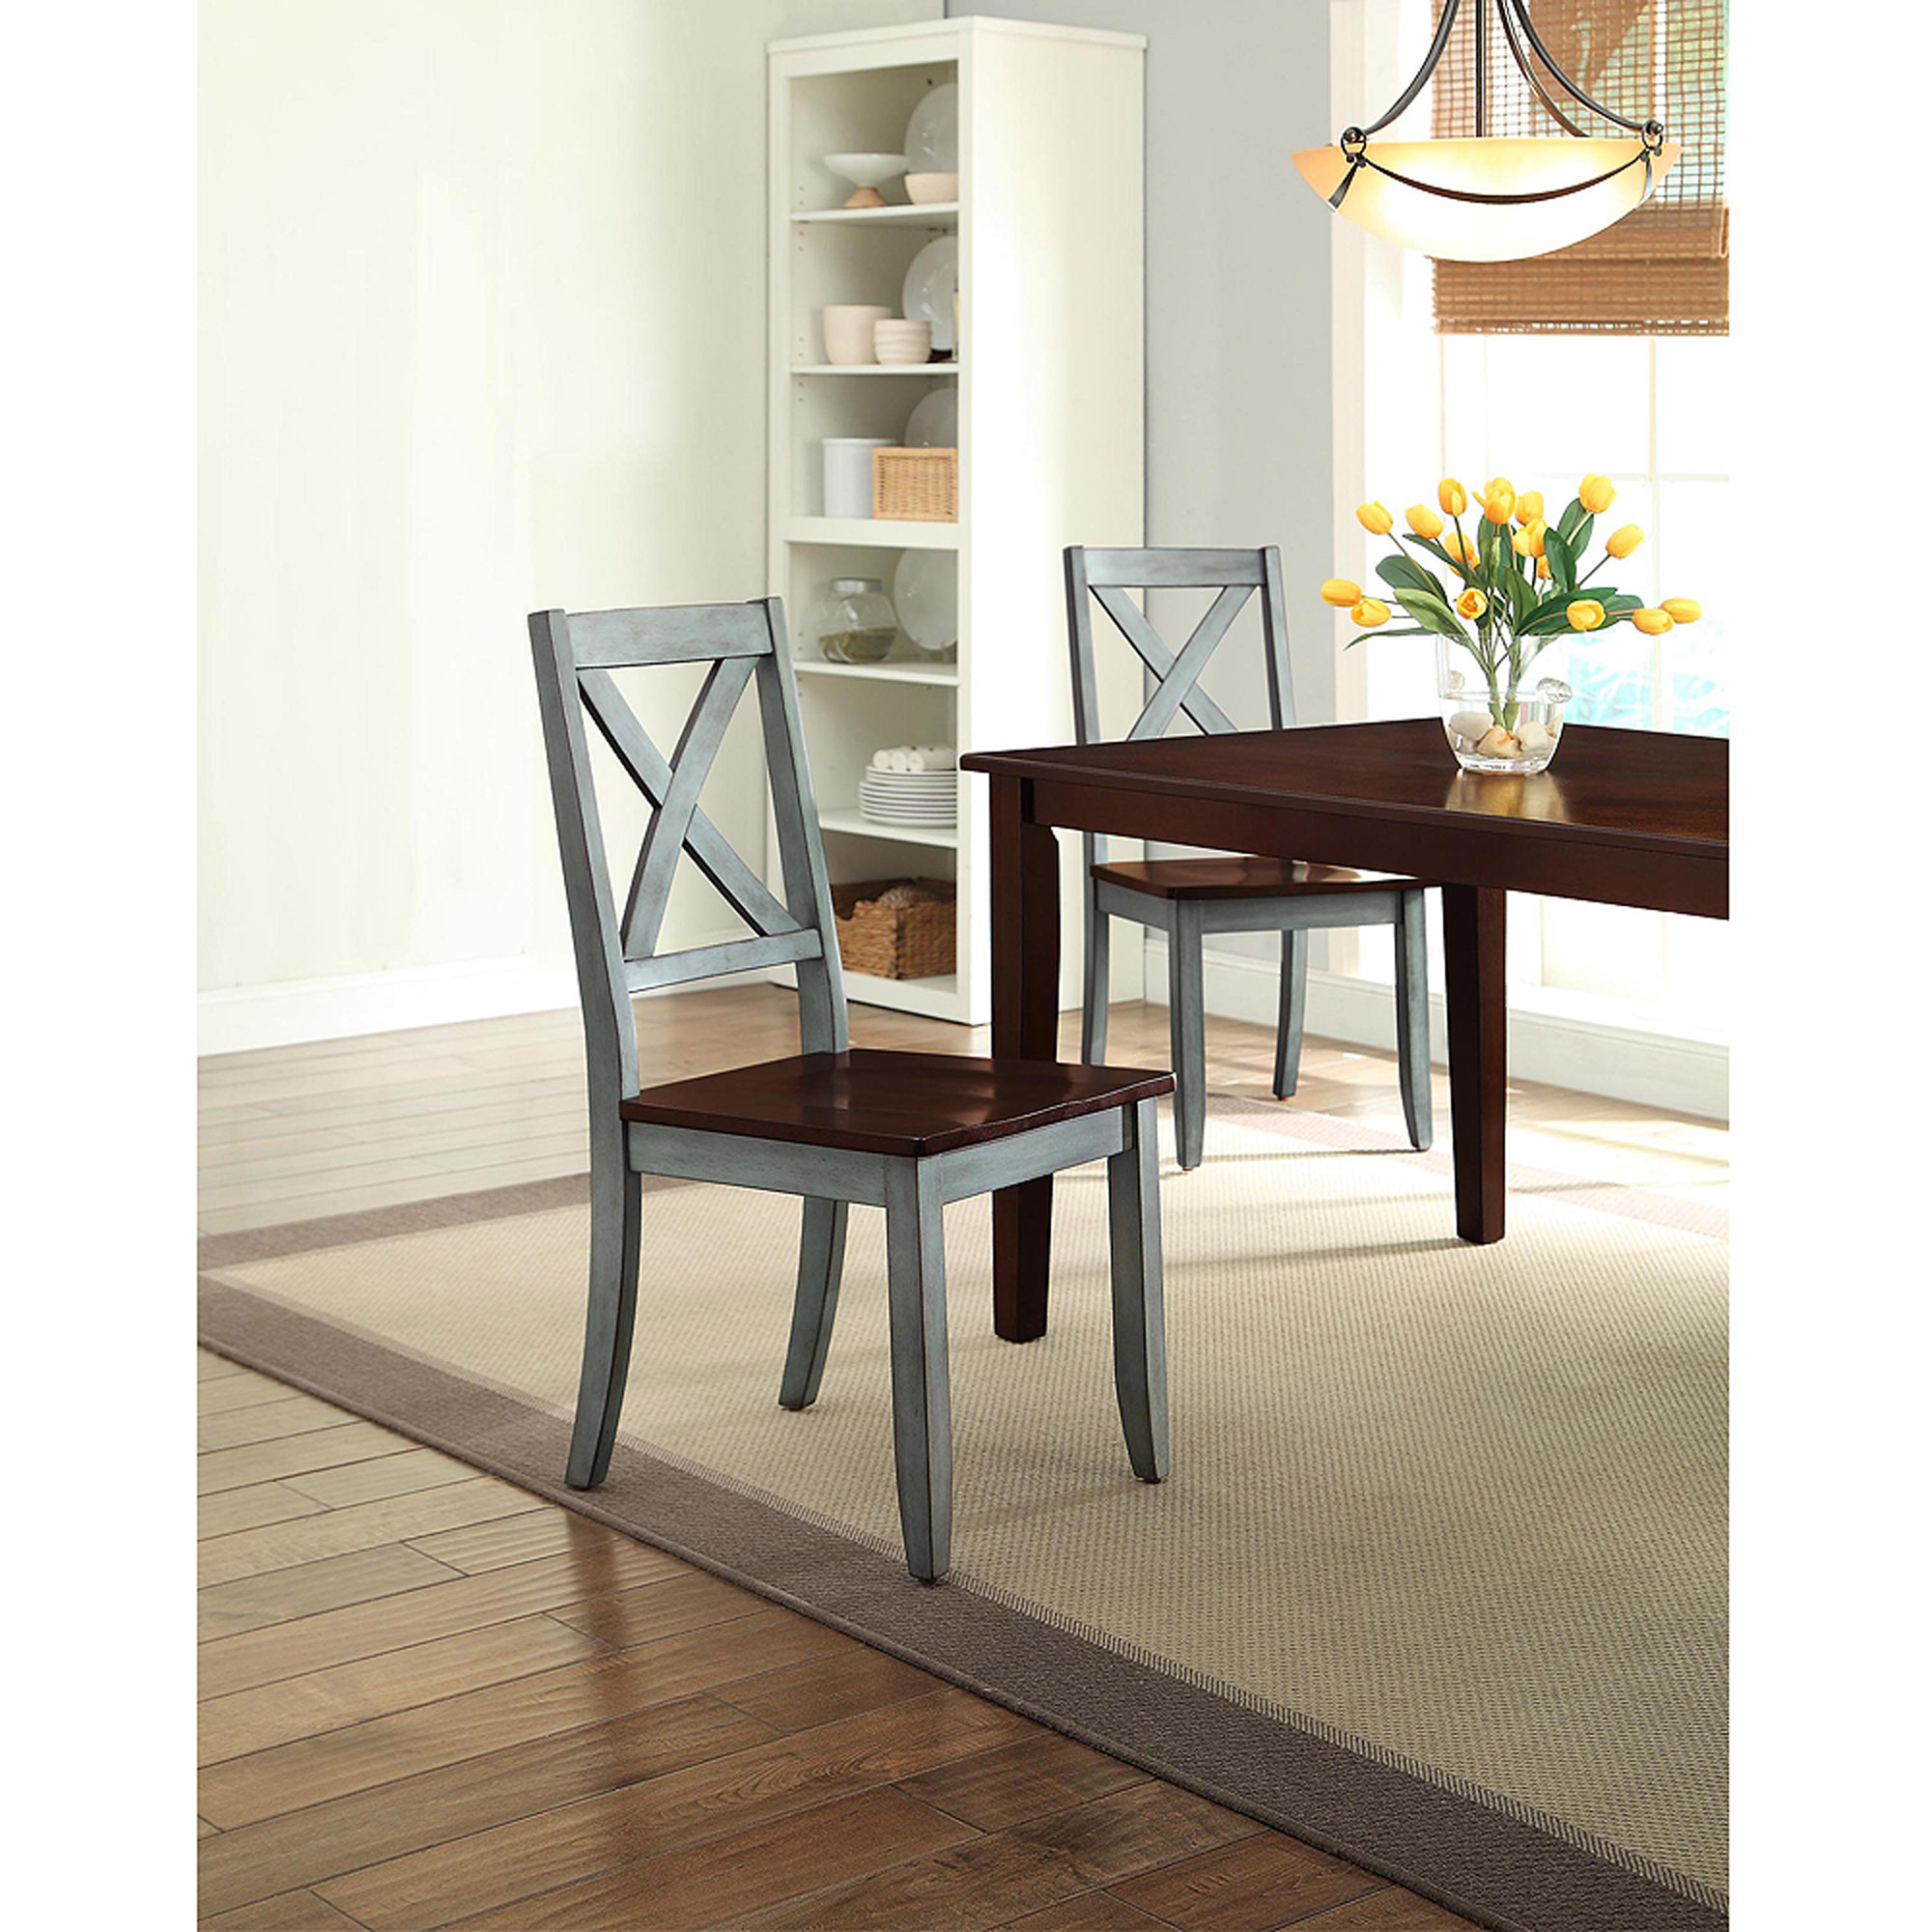 Better Homes and Gardens Maddox Crossing Dining Chair Blue Set